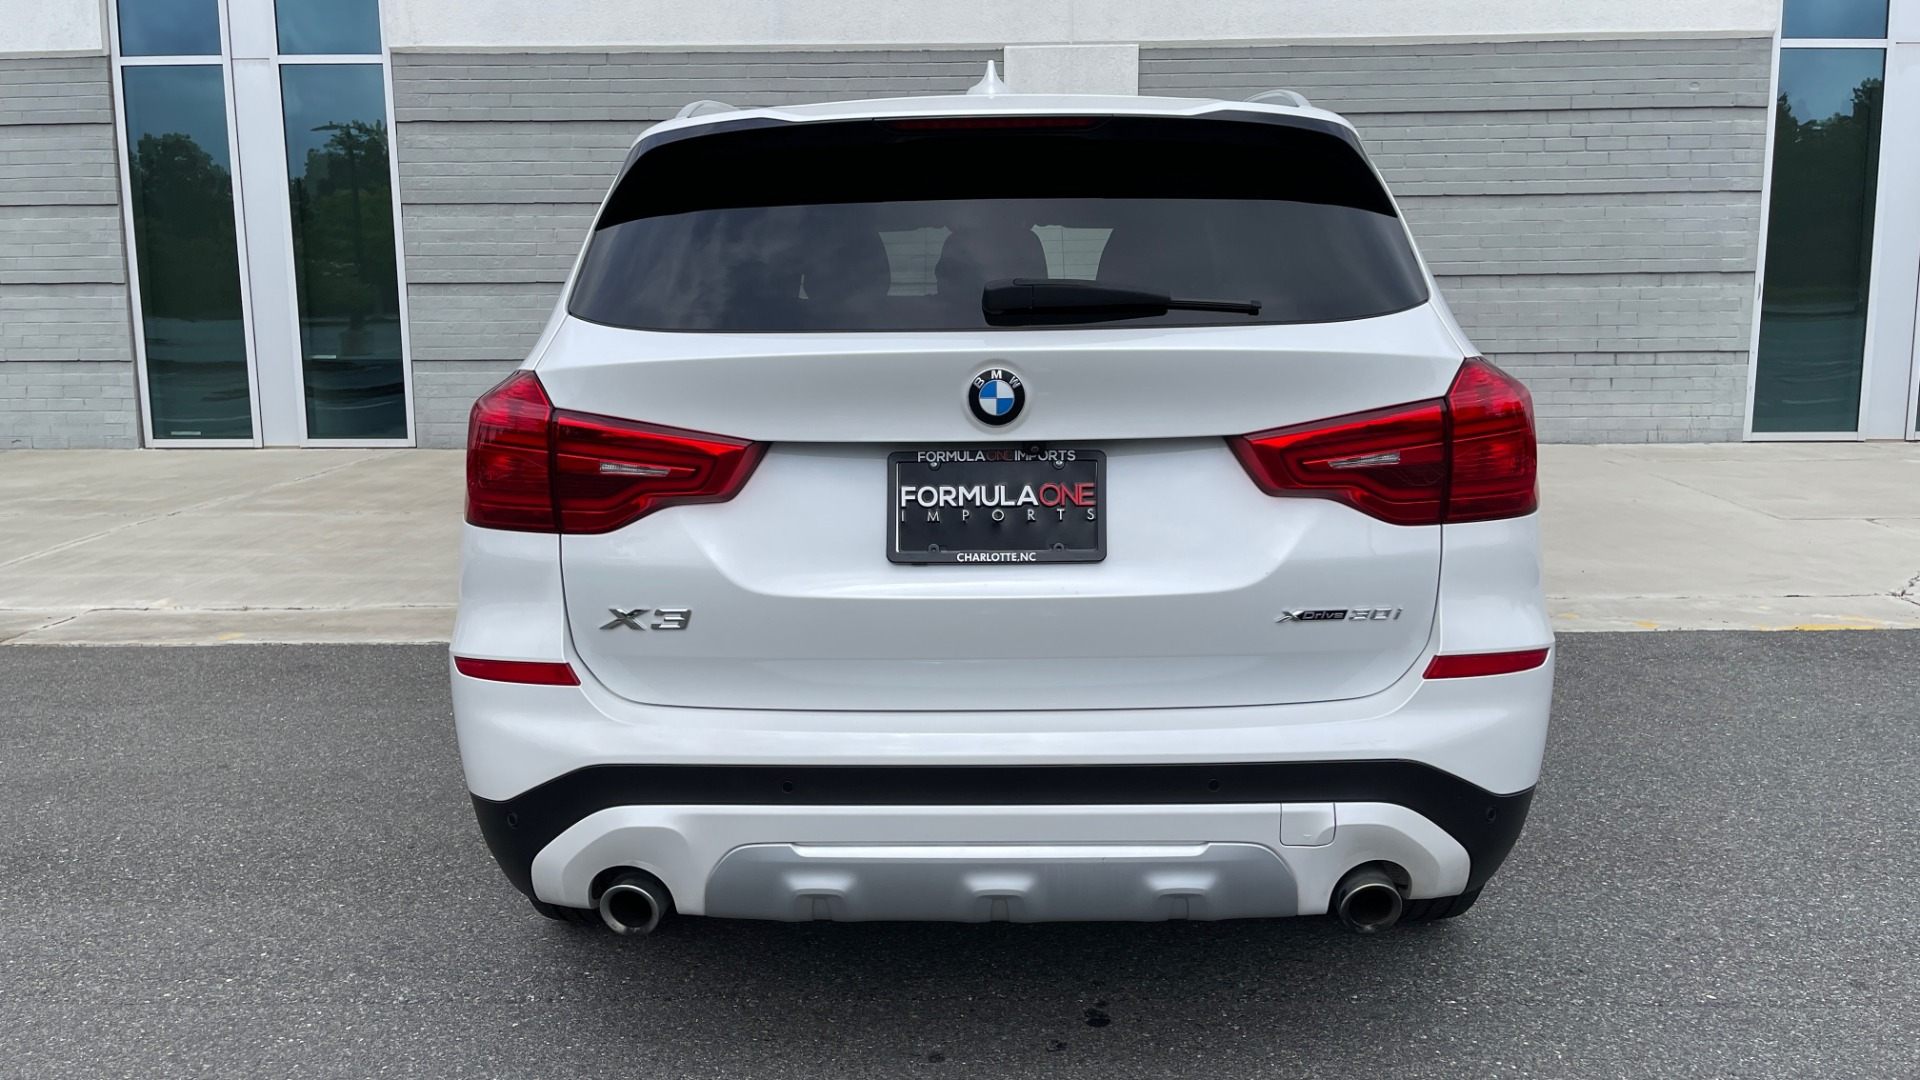 Used 2018 BMW X3 XDRIVE30I / NAV / PANO-ROOF / HTD STS / PARK DIST CNTRL / REARVIEW for sale $38,995 at Formula Imports in Charlotte NC 28227 22